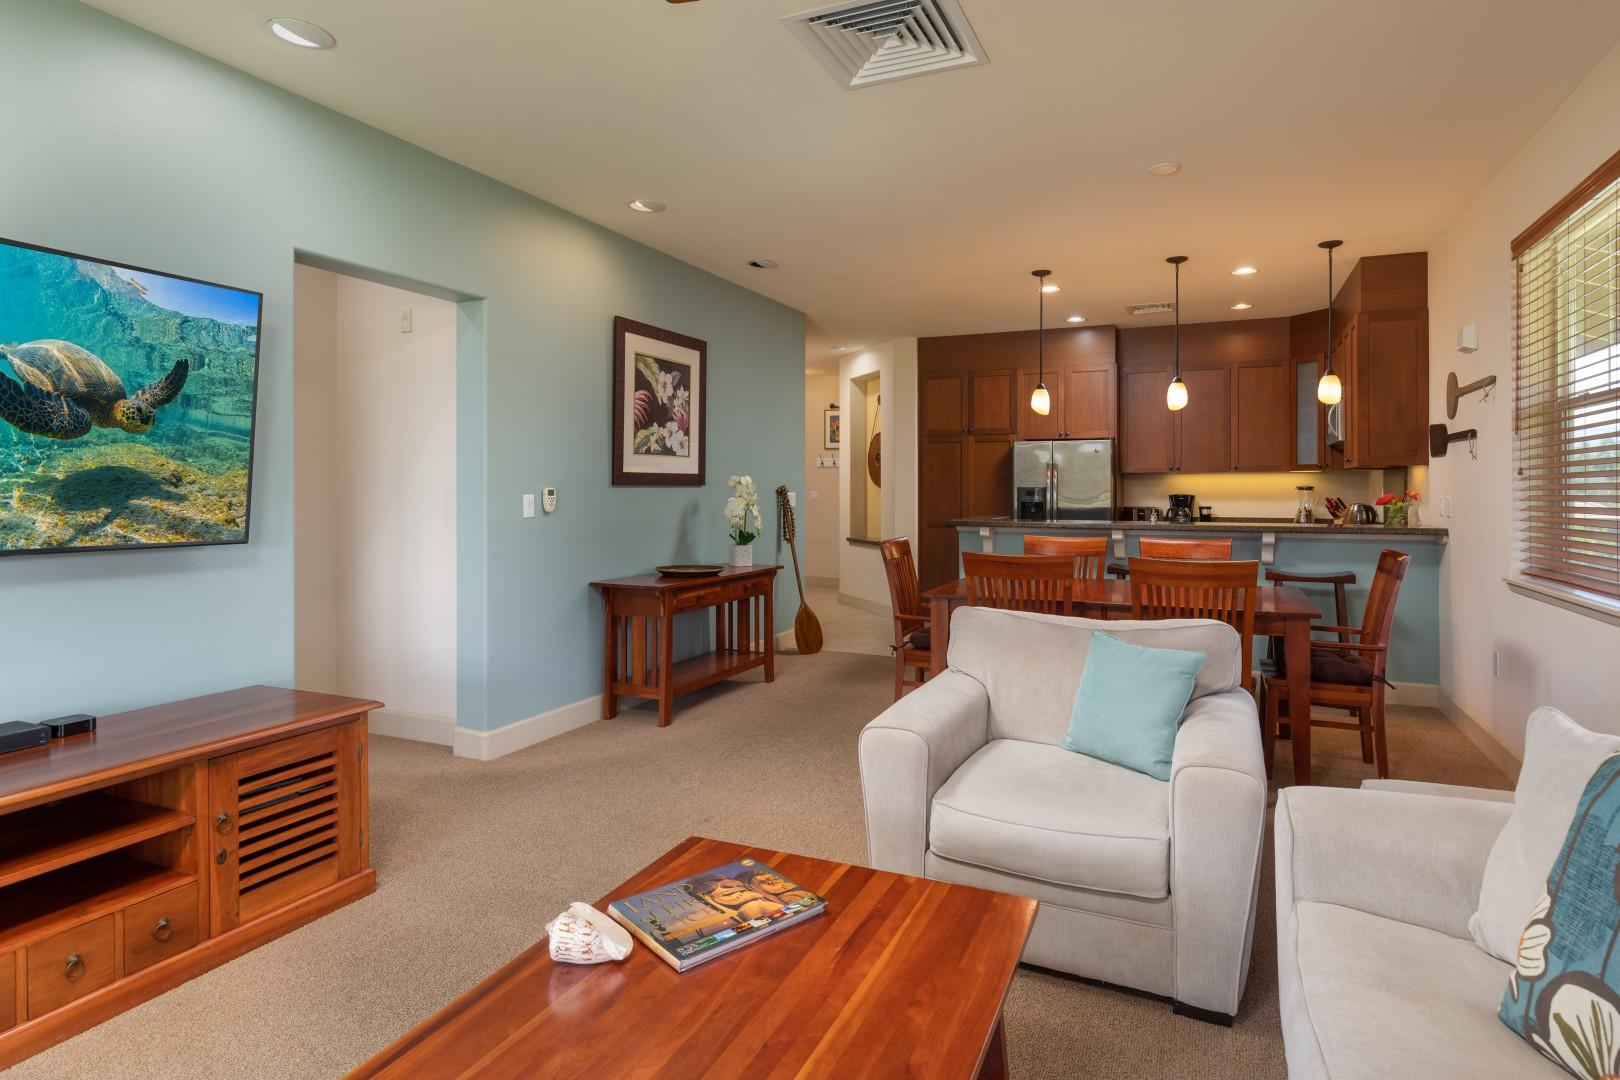 Comfy furniture to enjoy in the great room where the whole family can be together.